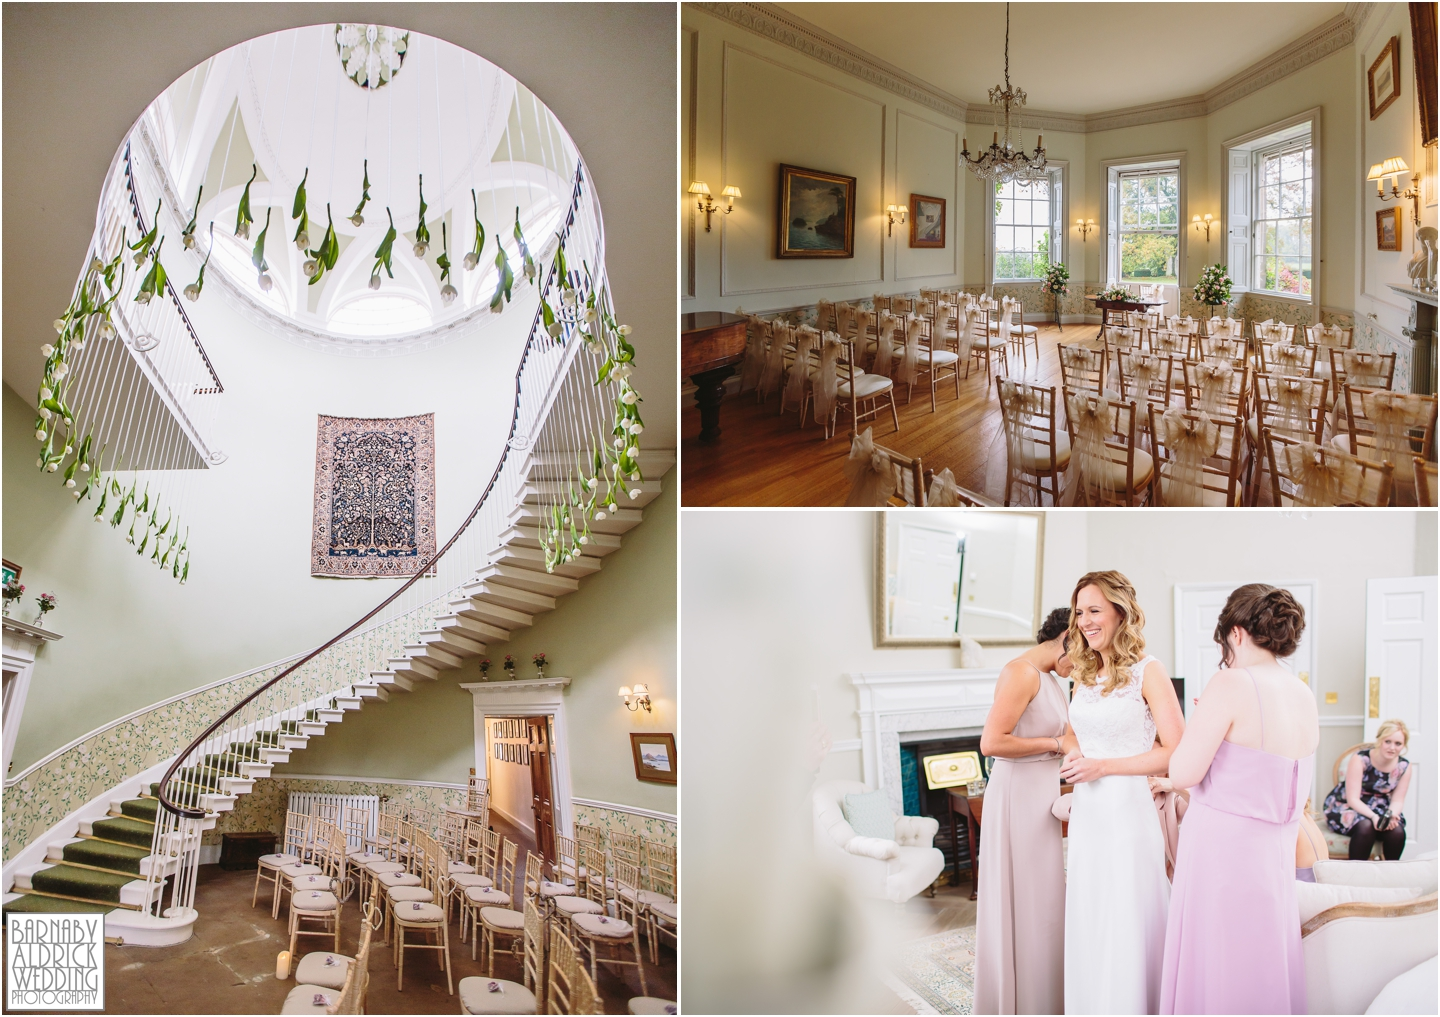 The wedding ceremony rooms at Middleton Lodge